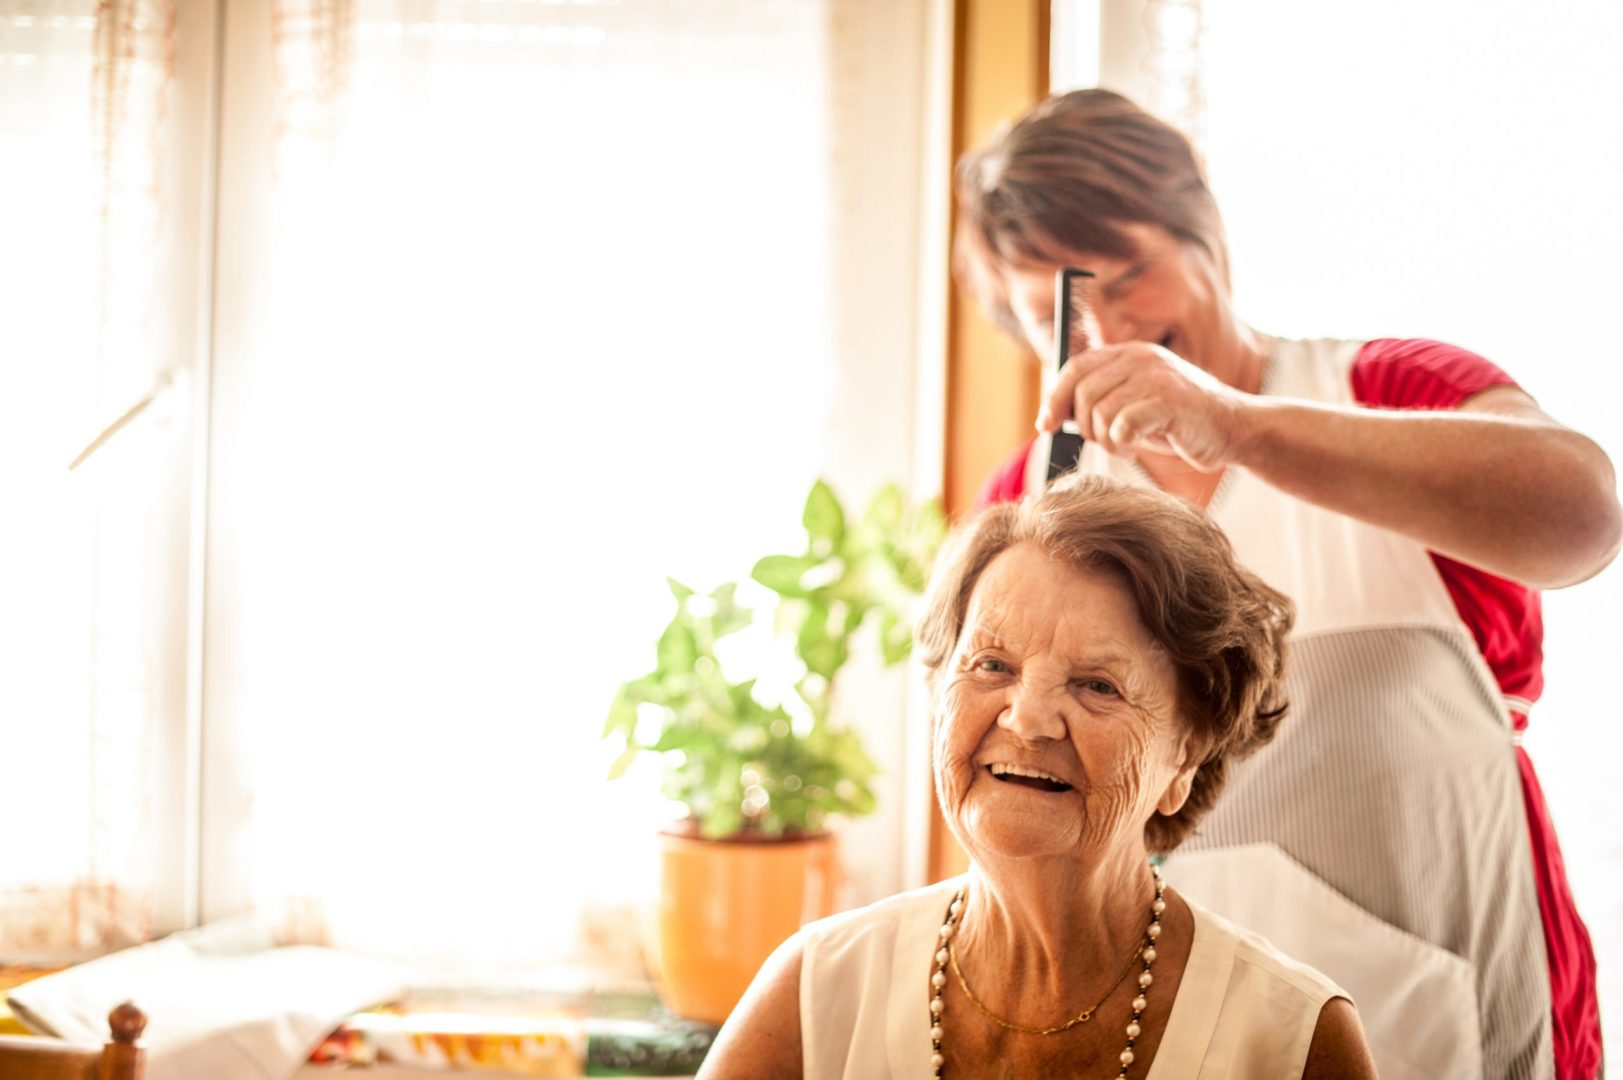 Caucasian senior woman has her hair styled. She is sitting in the foreground with the stylist to the back of her. She has short brown, wavy hair and is wearing a sleeveless, light cream linen top, a pearl necklace and short gold necklace. She is smiling. The stylist is behind her with a comb and is wearing a red top and apron. She has short brown hair. In the background is a large window and plant in a yellow pot.